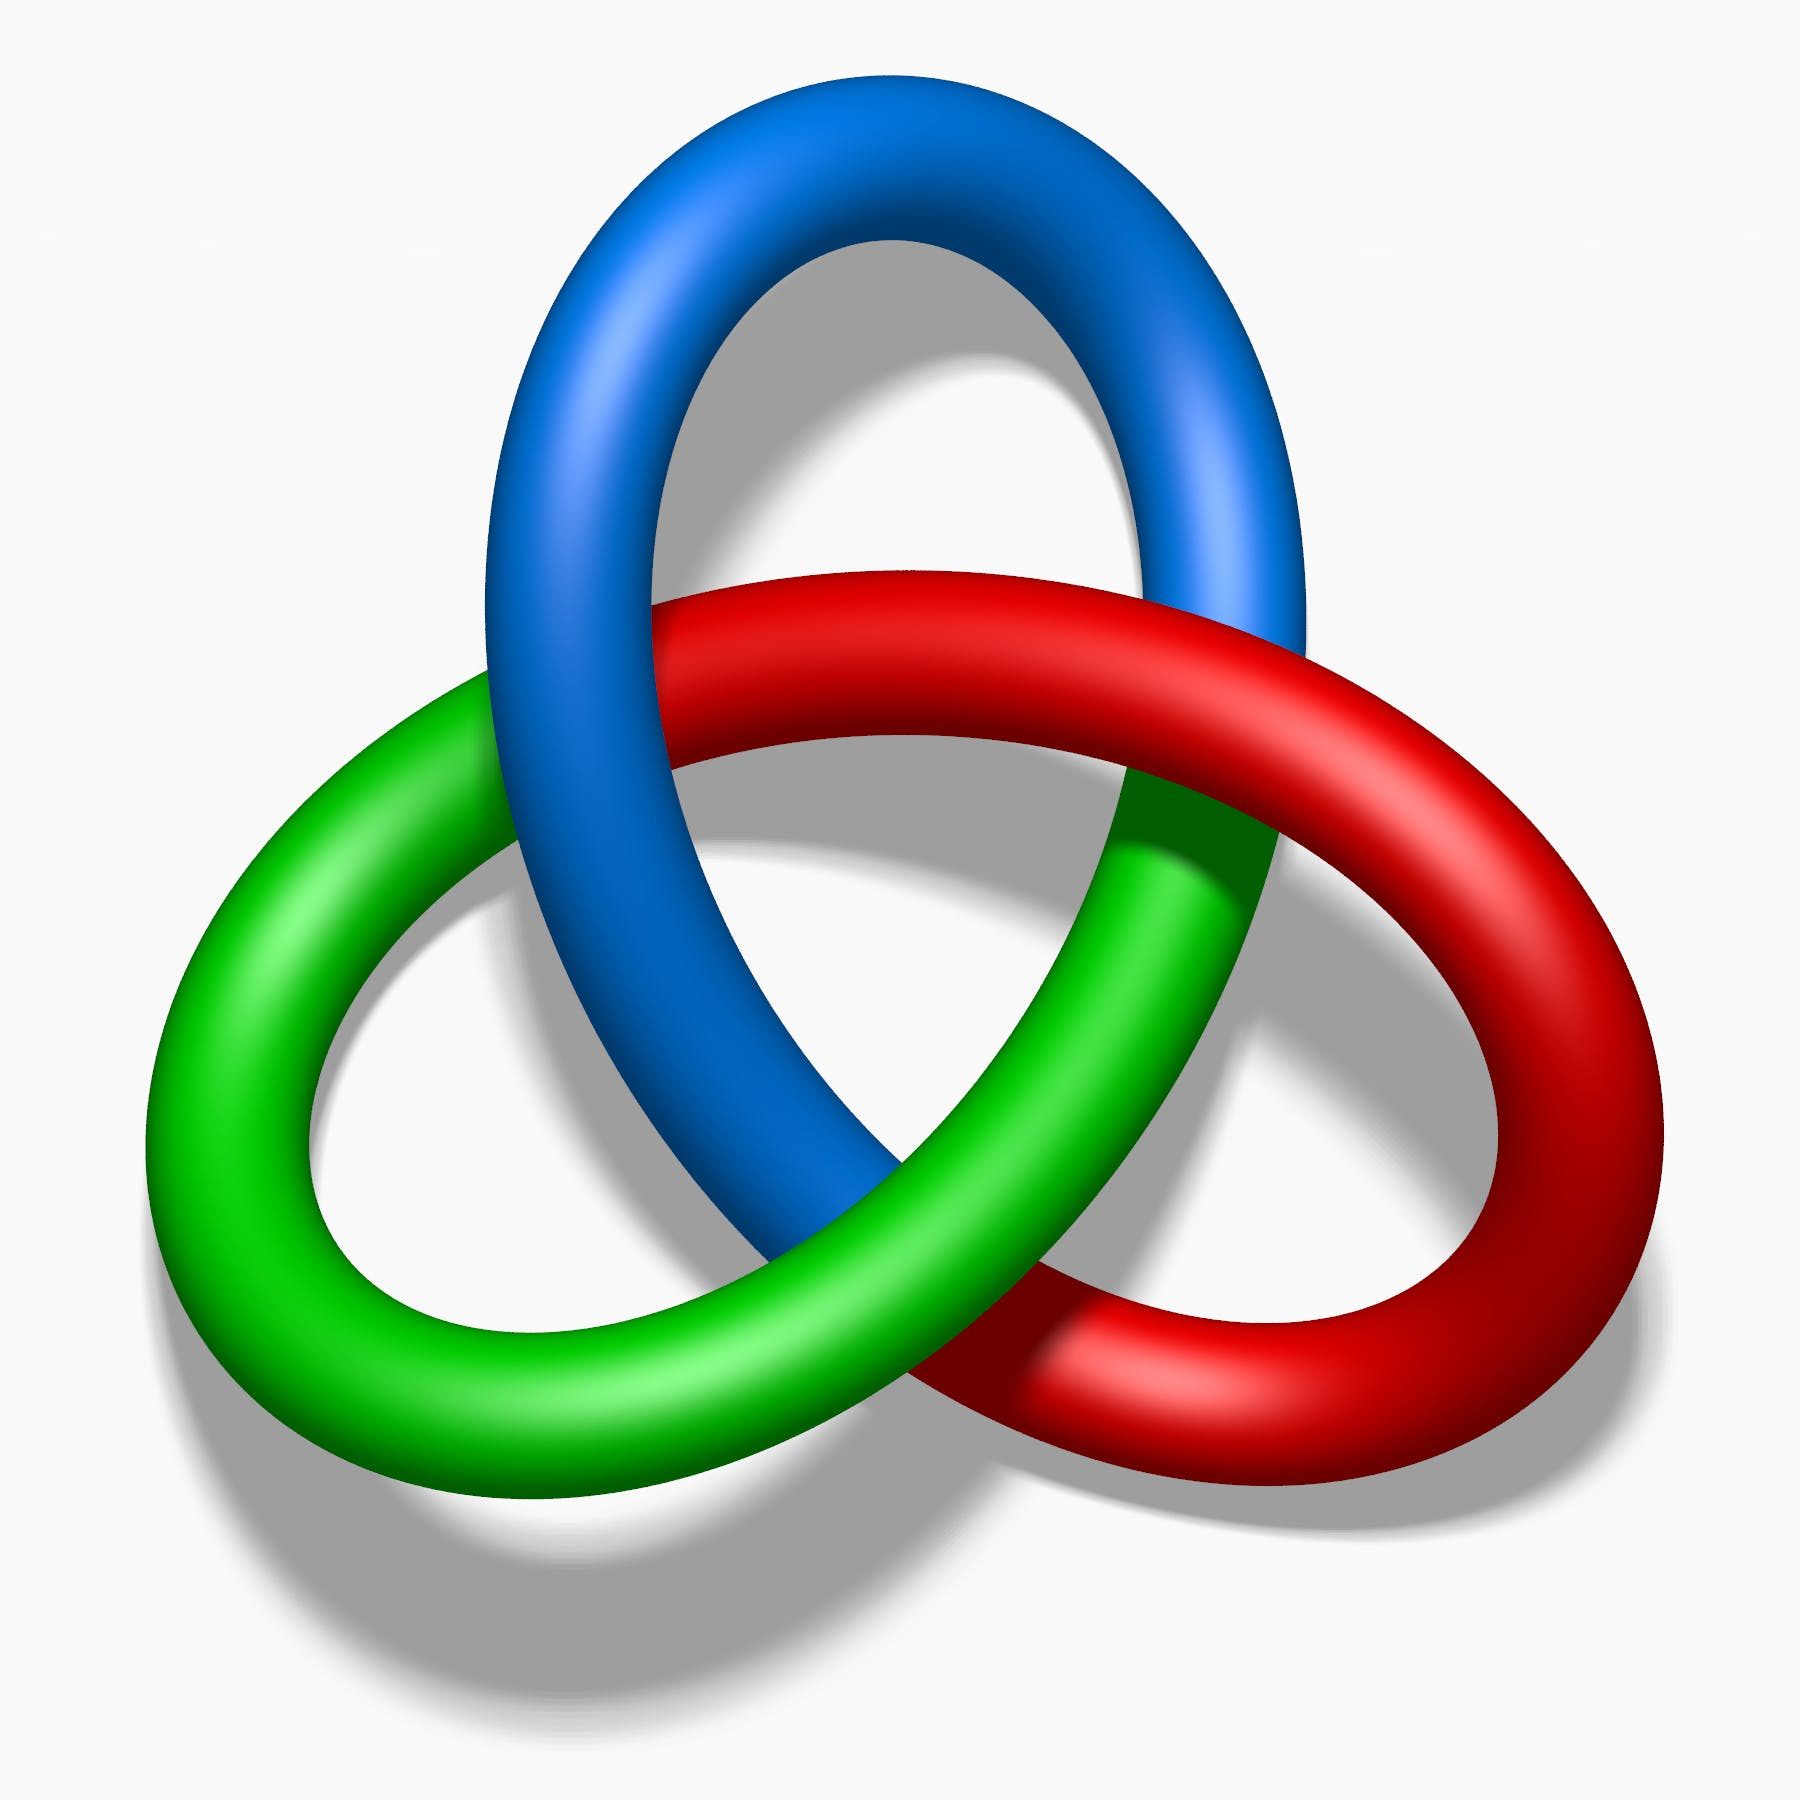 A trefoil knot with tricoloring. Each of the three loops of the knot is colored differently, one in blue, one in red, one in green